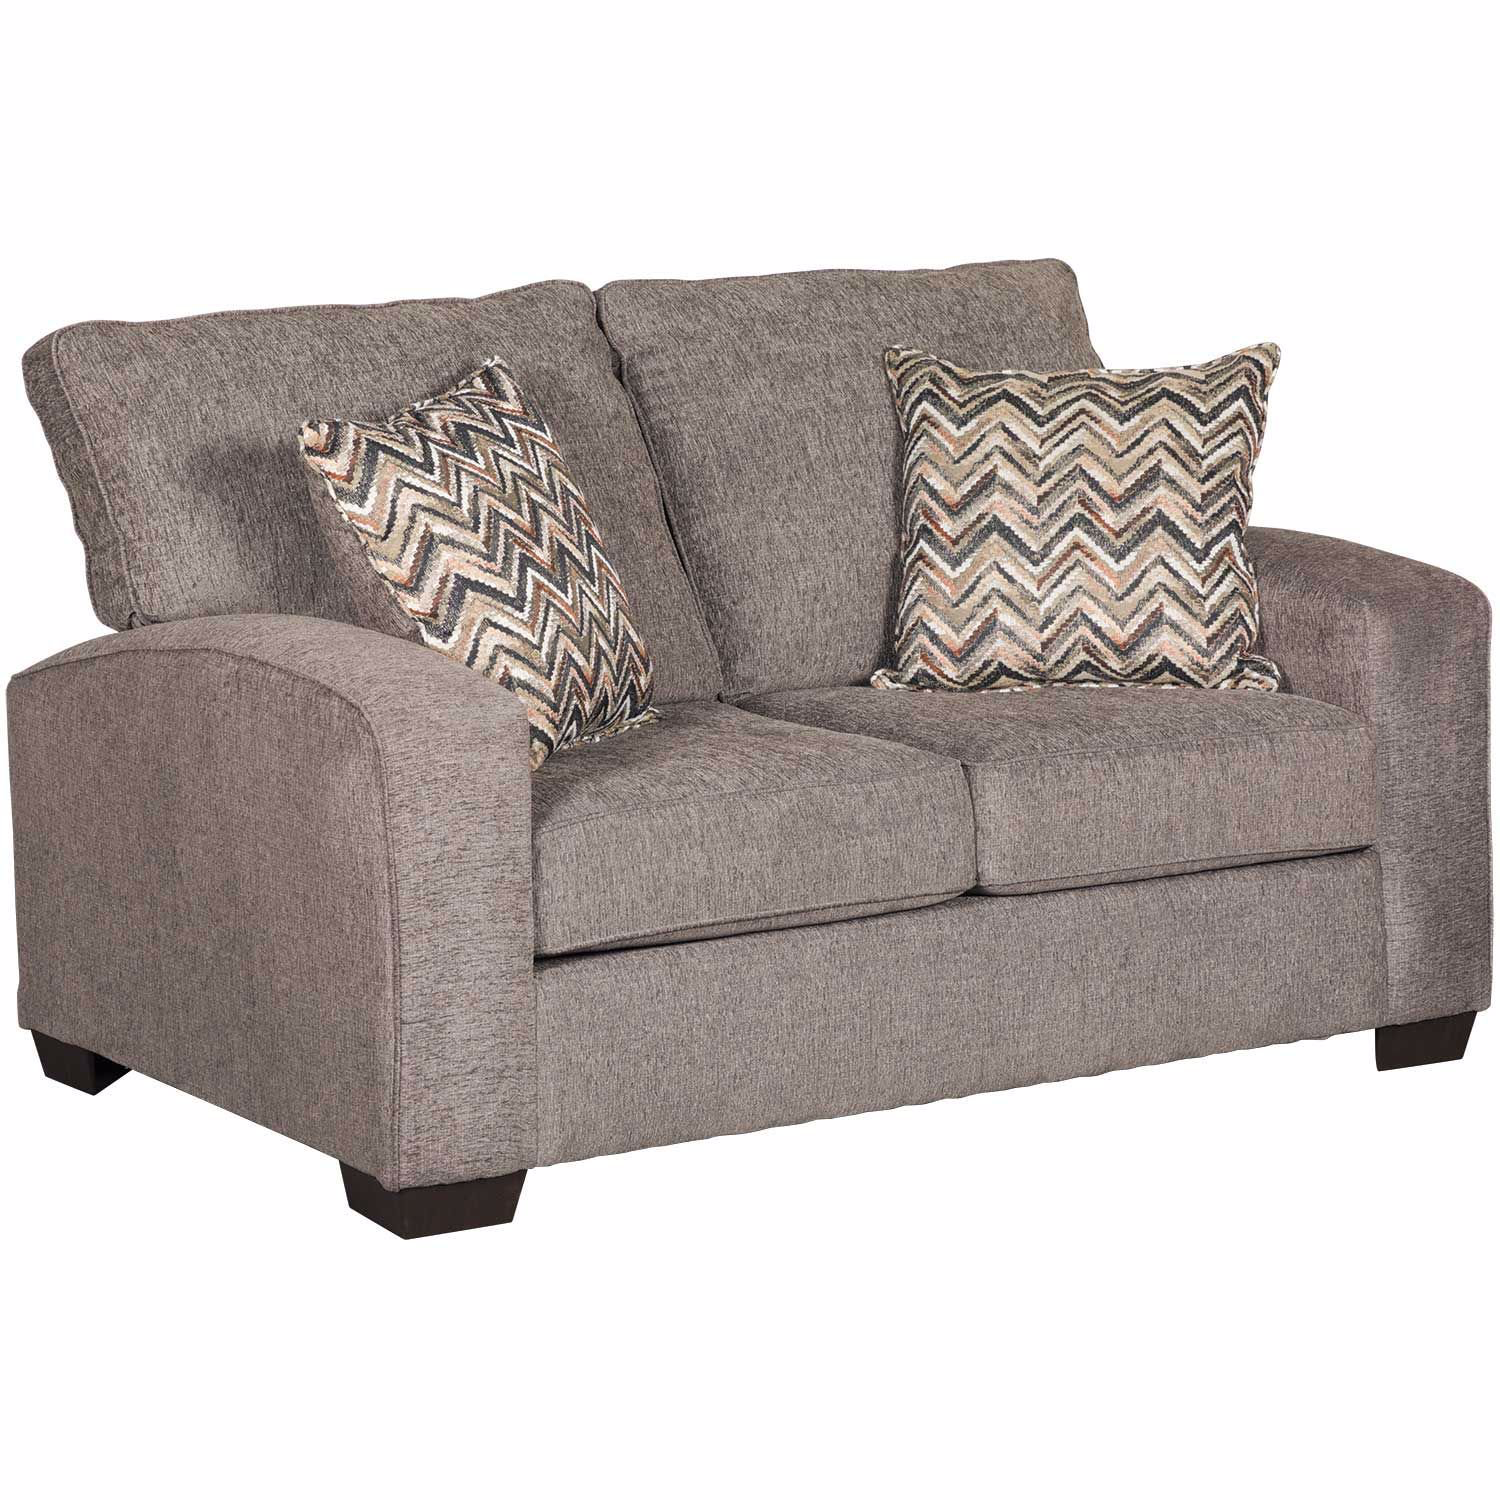 Endurance Loveseat